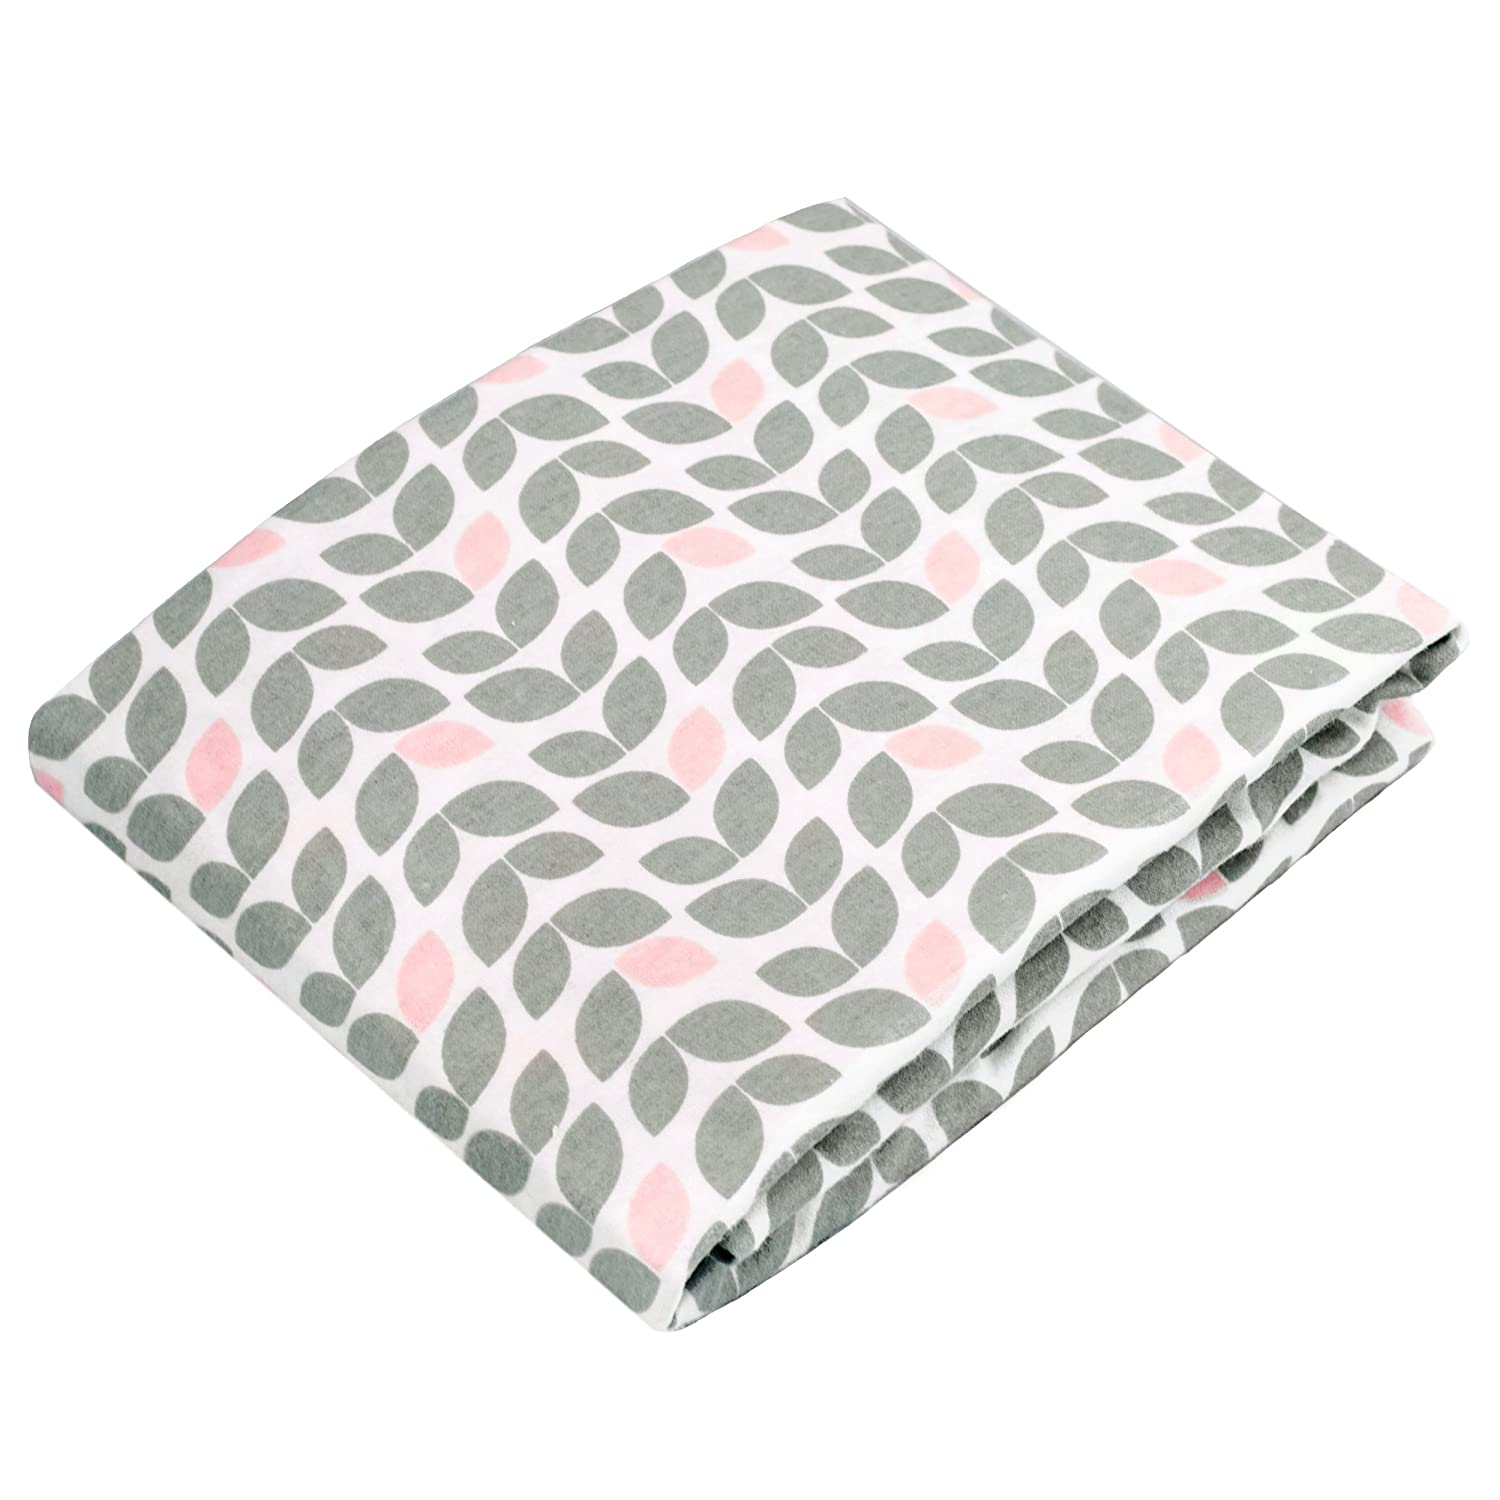 Kushies Changing Pad Cover for 1 pad, 100% breathable cotton, Made in Canada, Grey Petal Kushies Baby S340-517